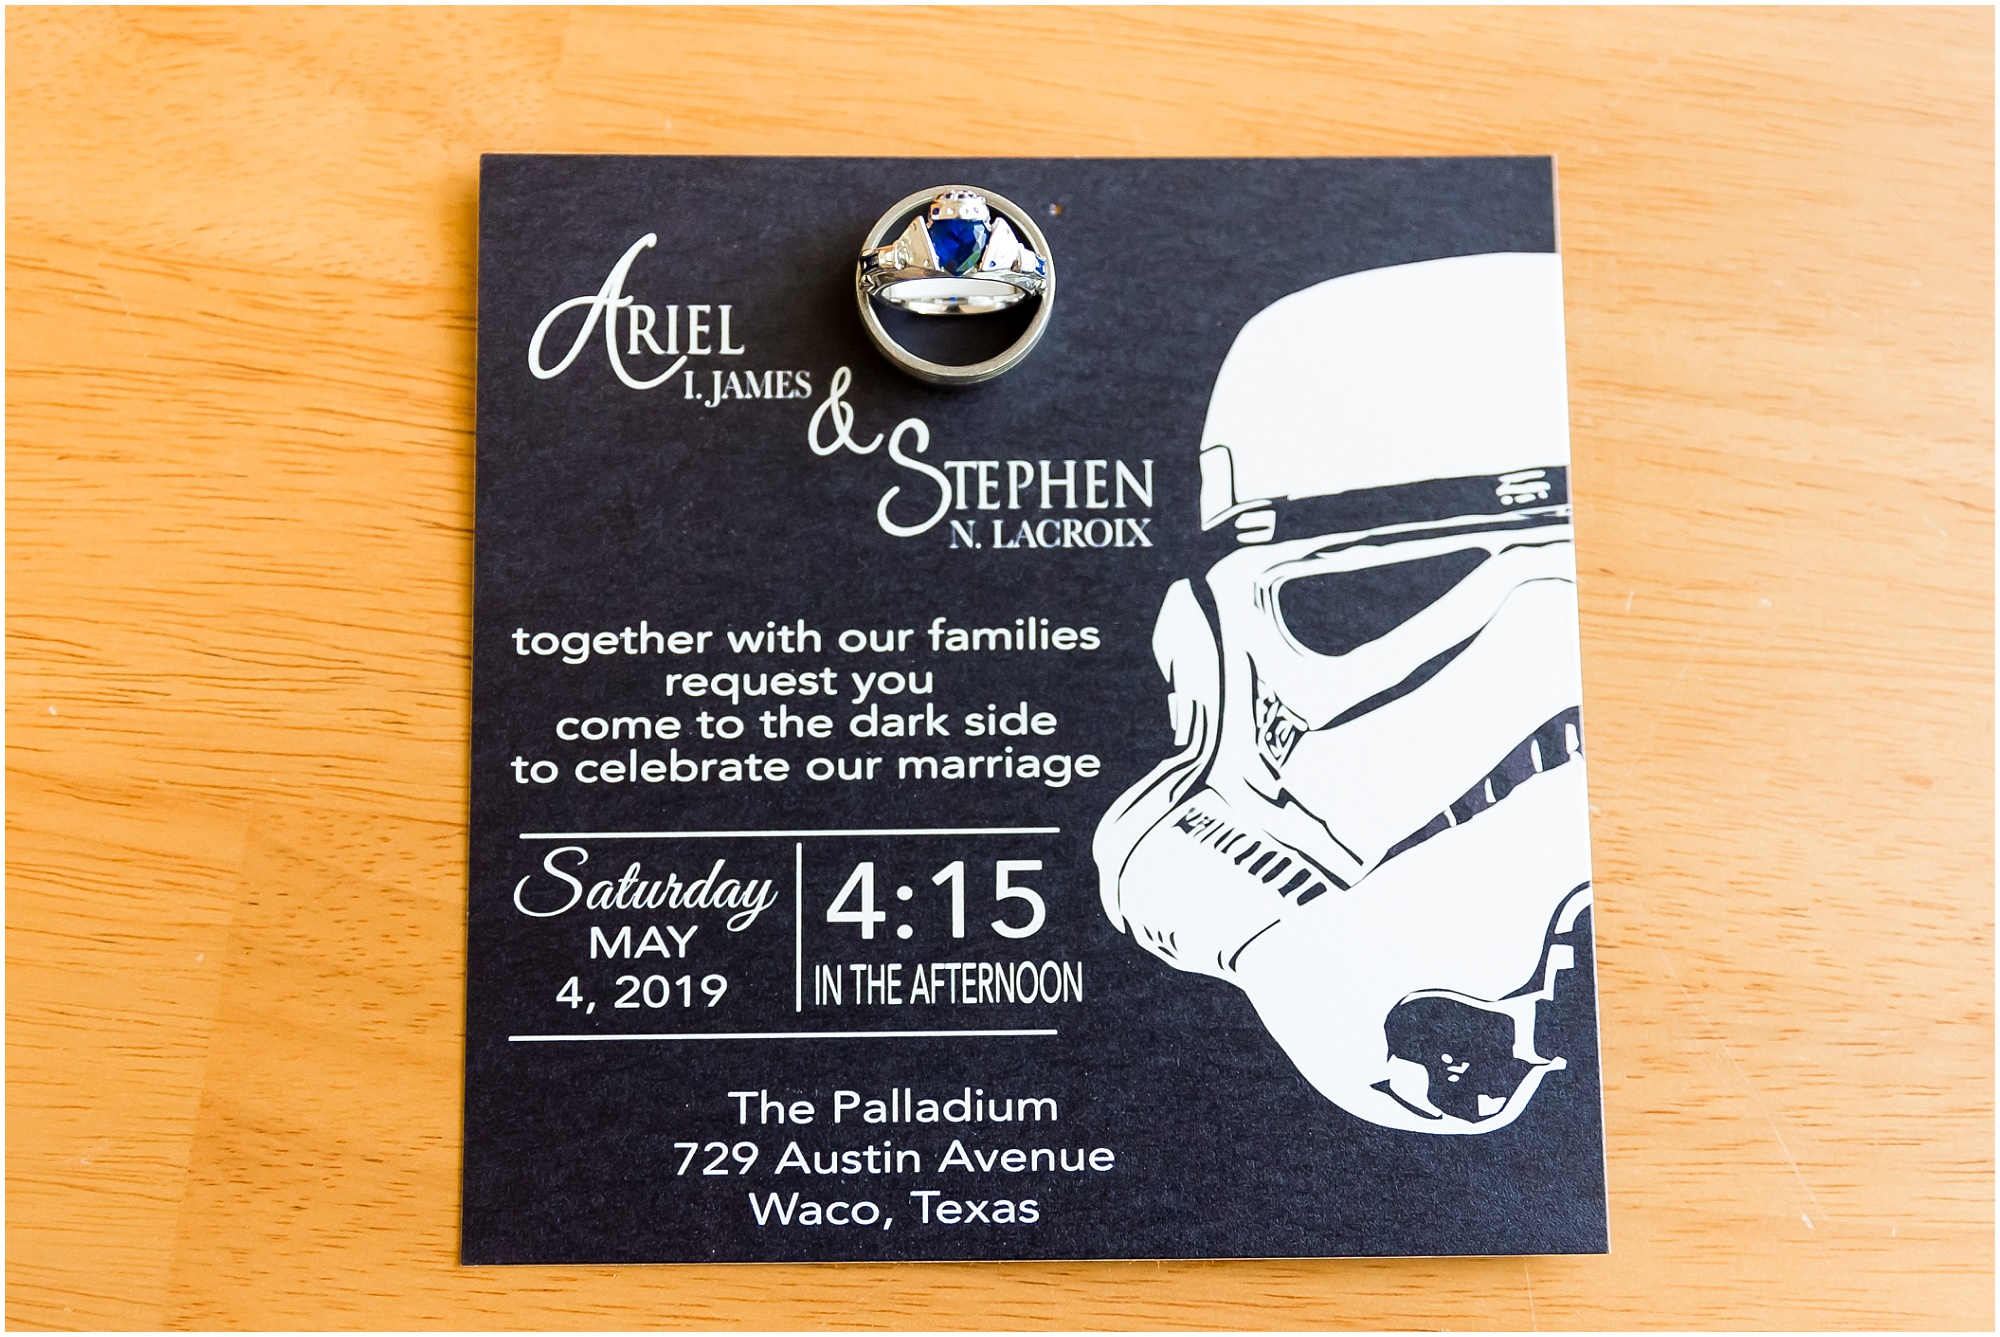 Star-Wars-Wedding_0004.jpg